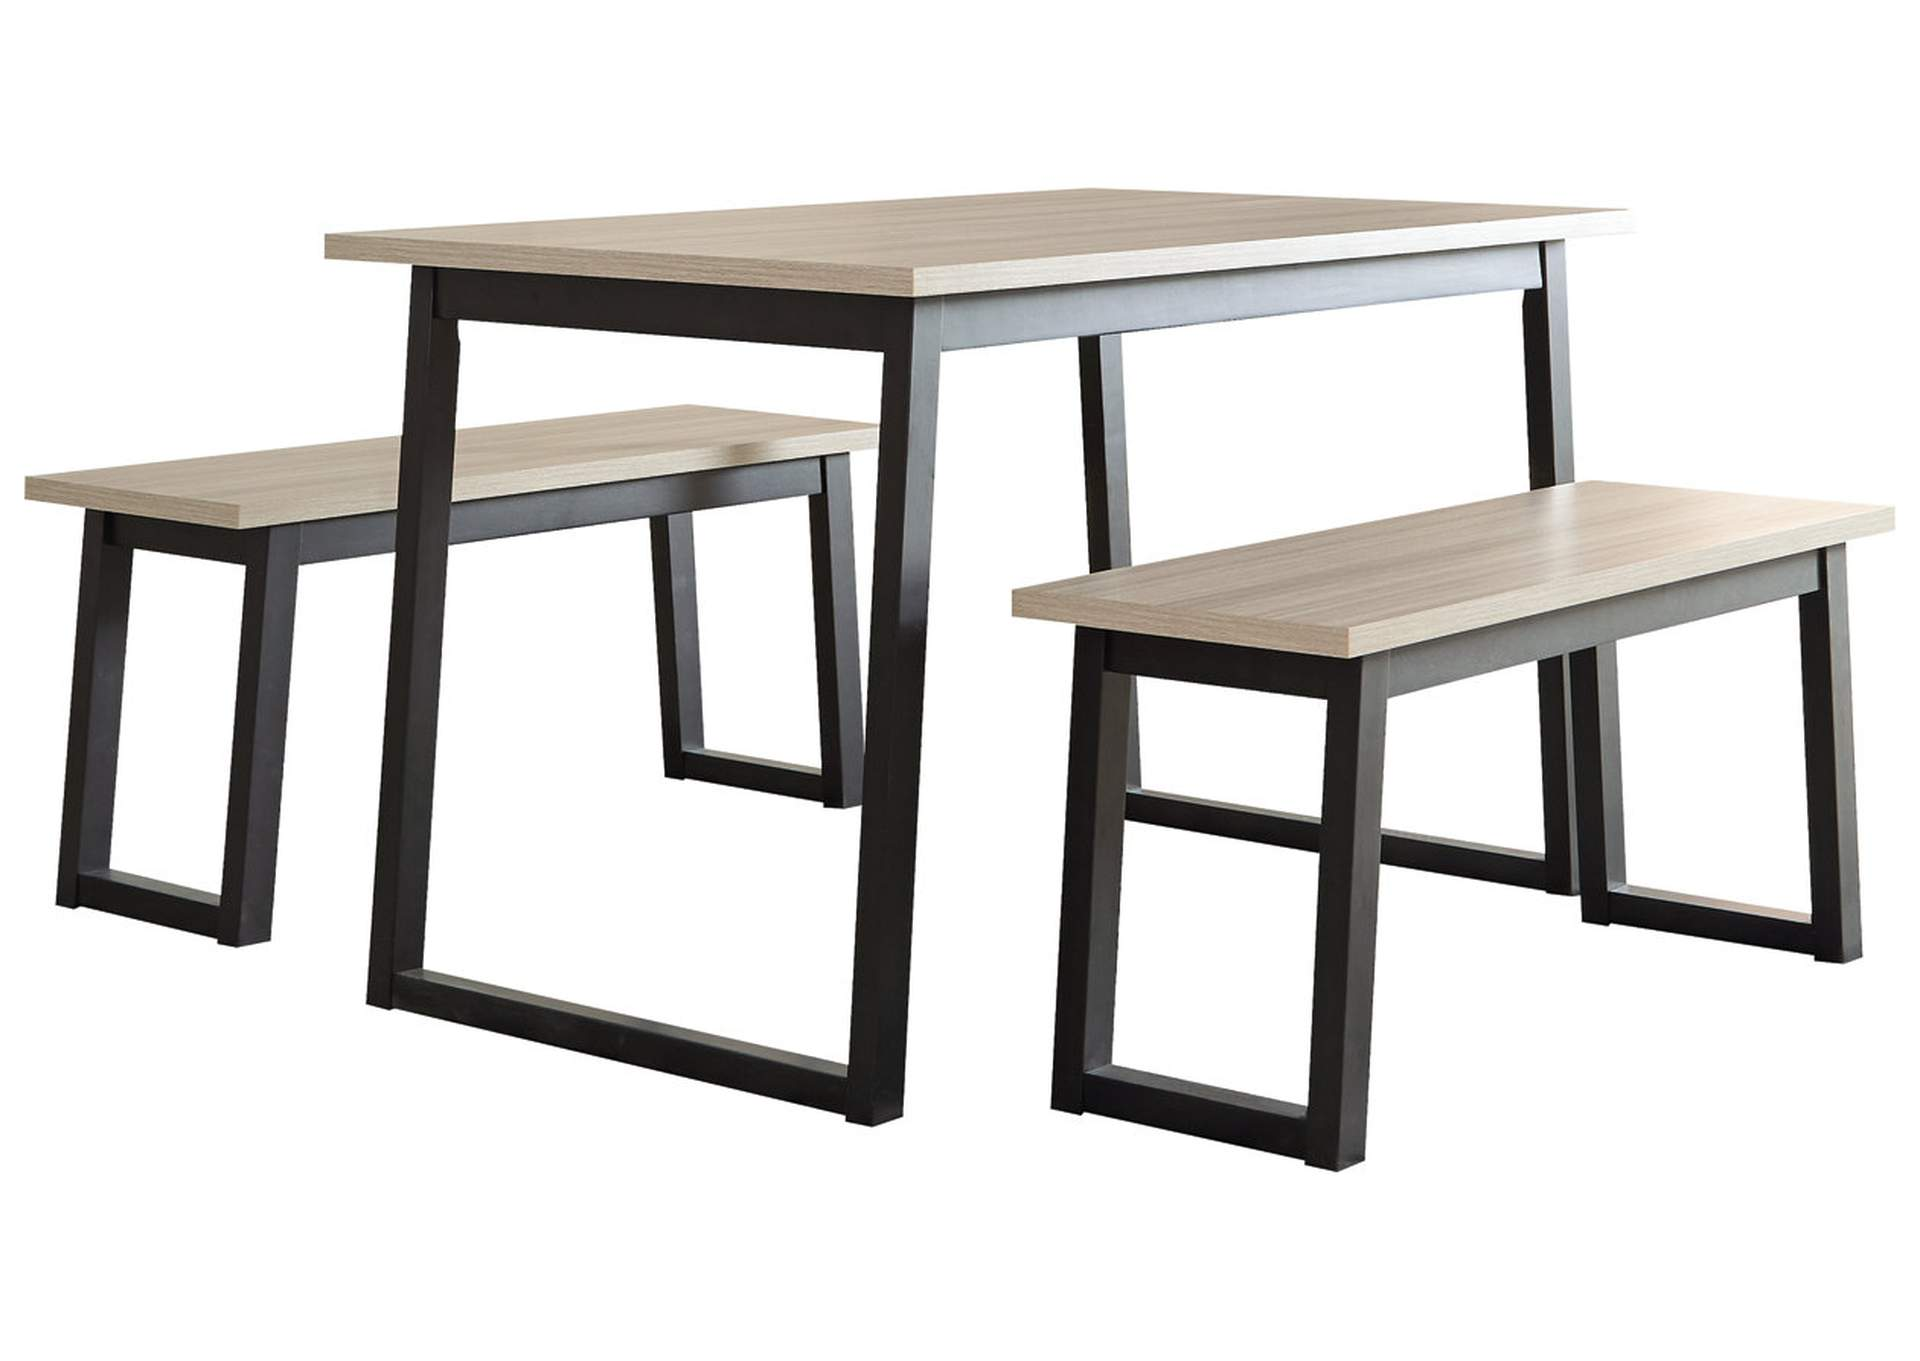 Waylowe Dining Room Table And Benches Set Of 3 Ashley Furniture Homestore Independently Owned And Operated By Eagle Prop